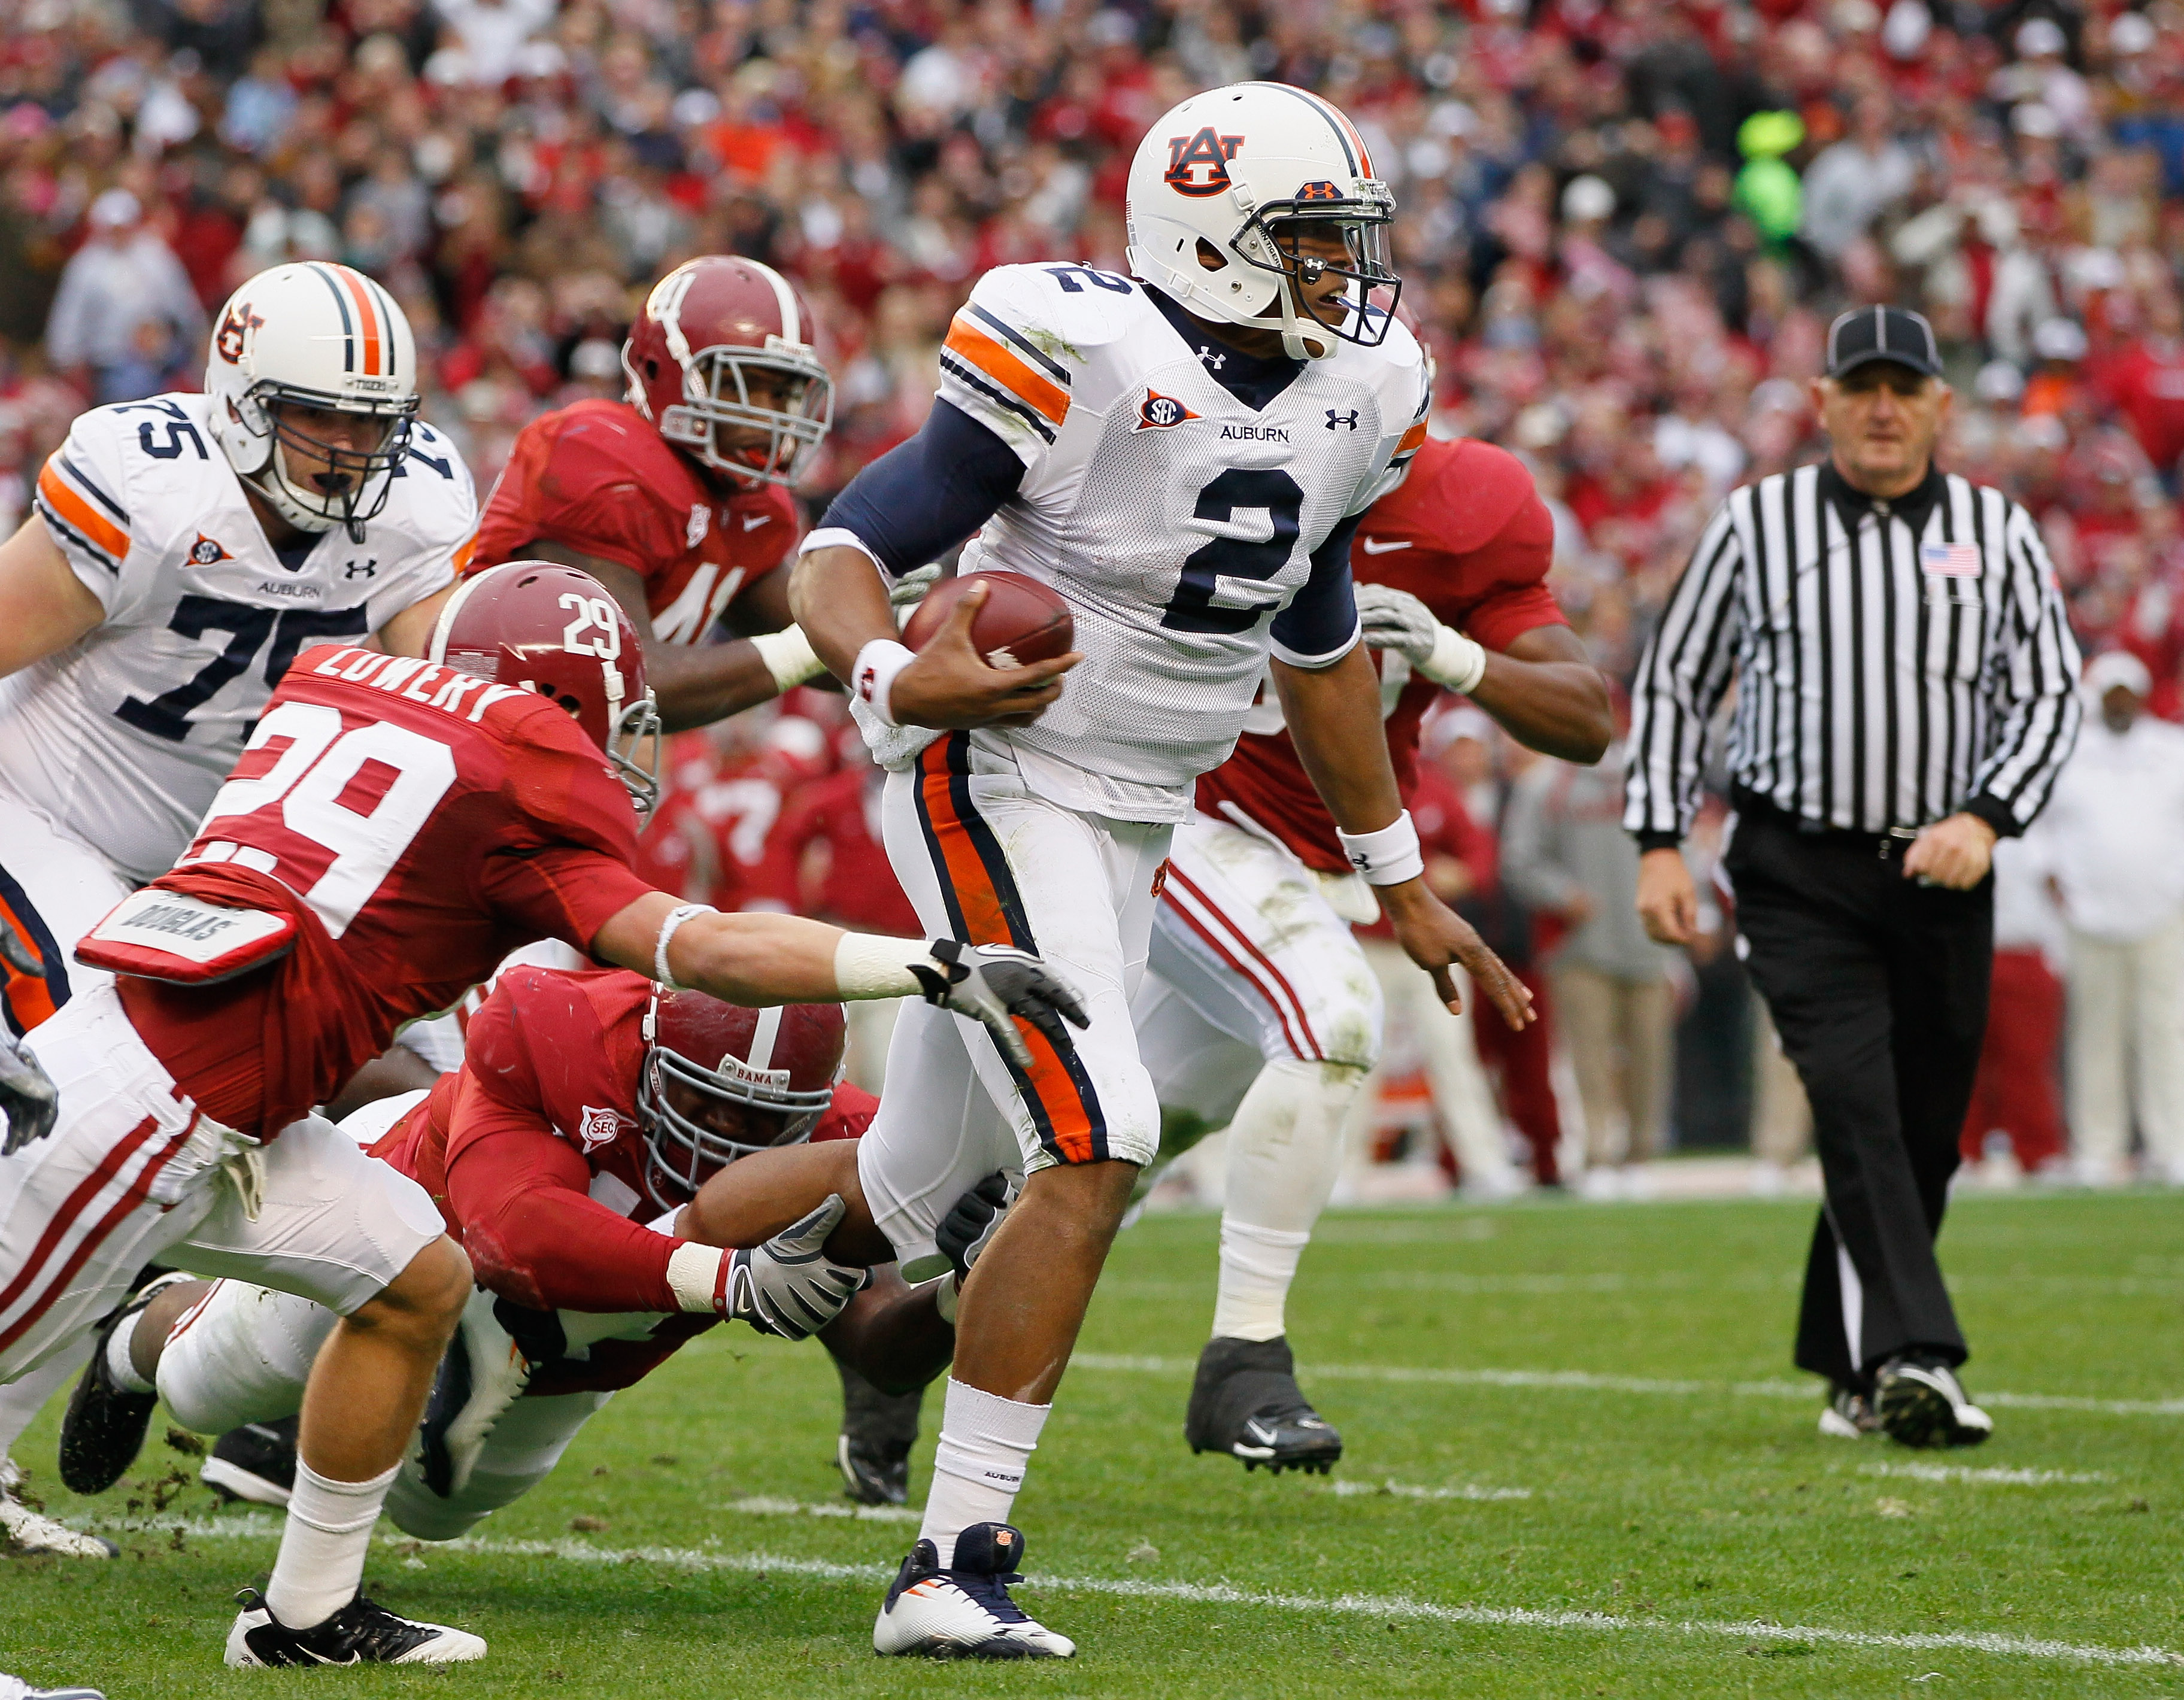 TUSCALOOSA, AL - NOVEMBER 26:  Quarterback Cam Newton #2 of the Auburn Tigers rushes upfield away from Will Lowery #29 and Marcell Dareus #57 of the Alabama Crimson Tide at Bryant-Denny Stadium on November 26, 2010 in Tuscaloosa, Alabama.  (Photo by Kevin